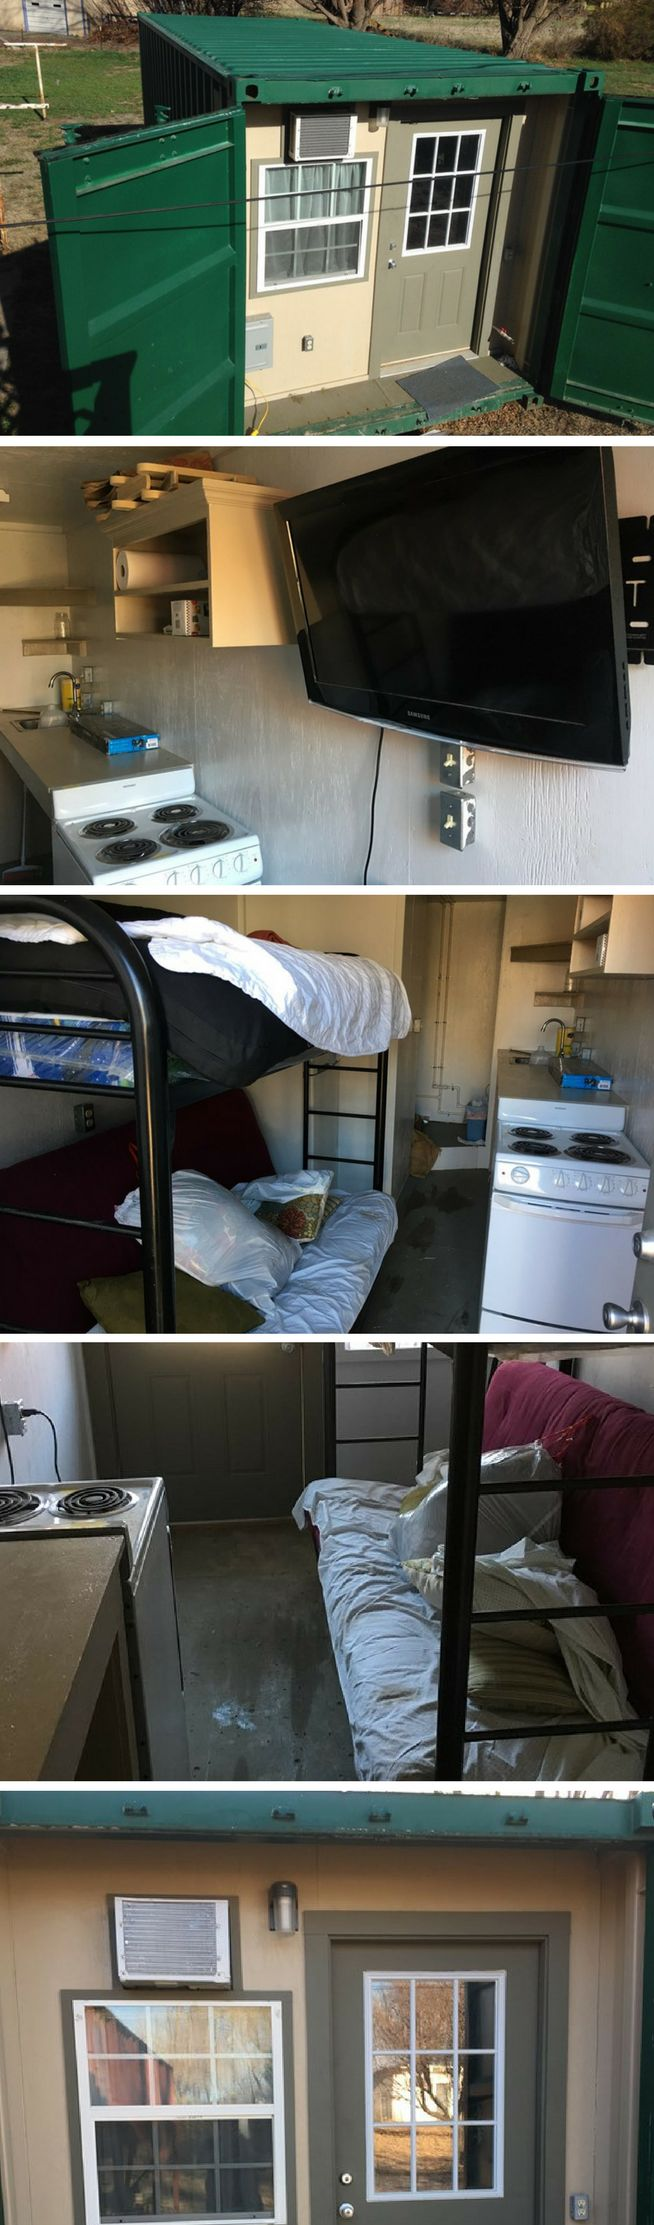 STEALTH CONEX TINY CONTAINER HOUSE